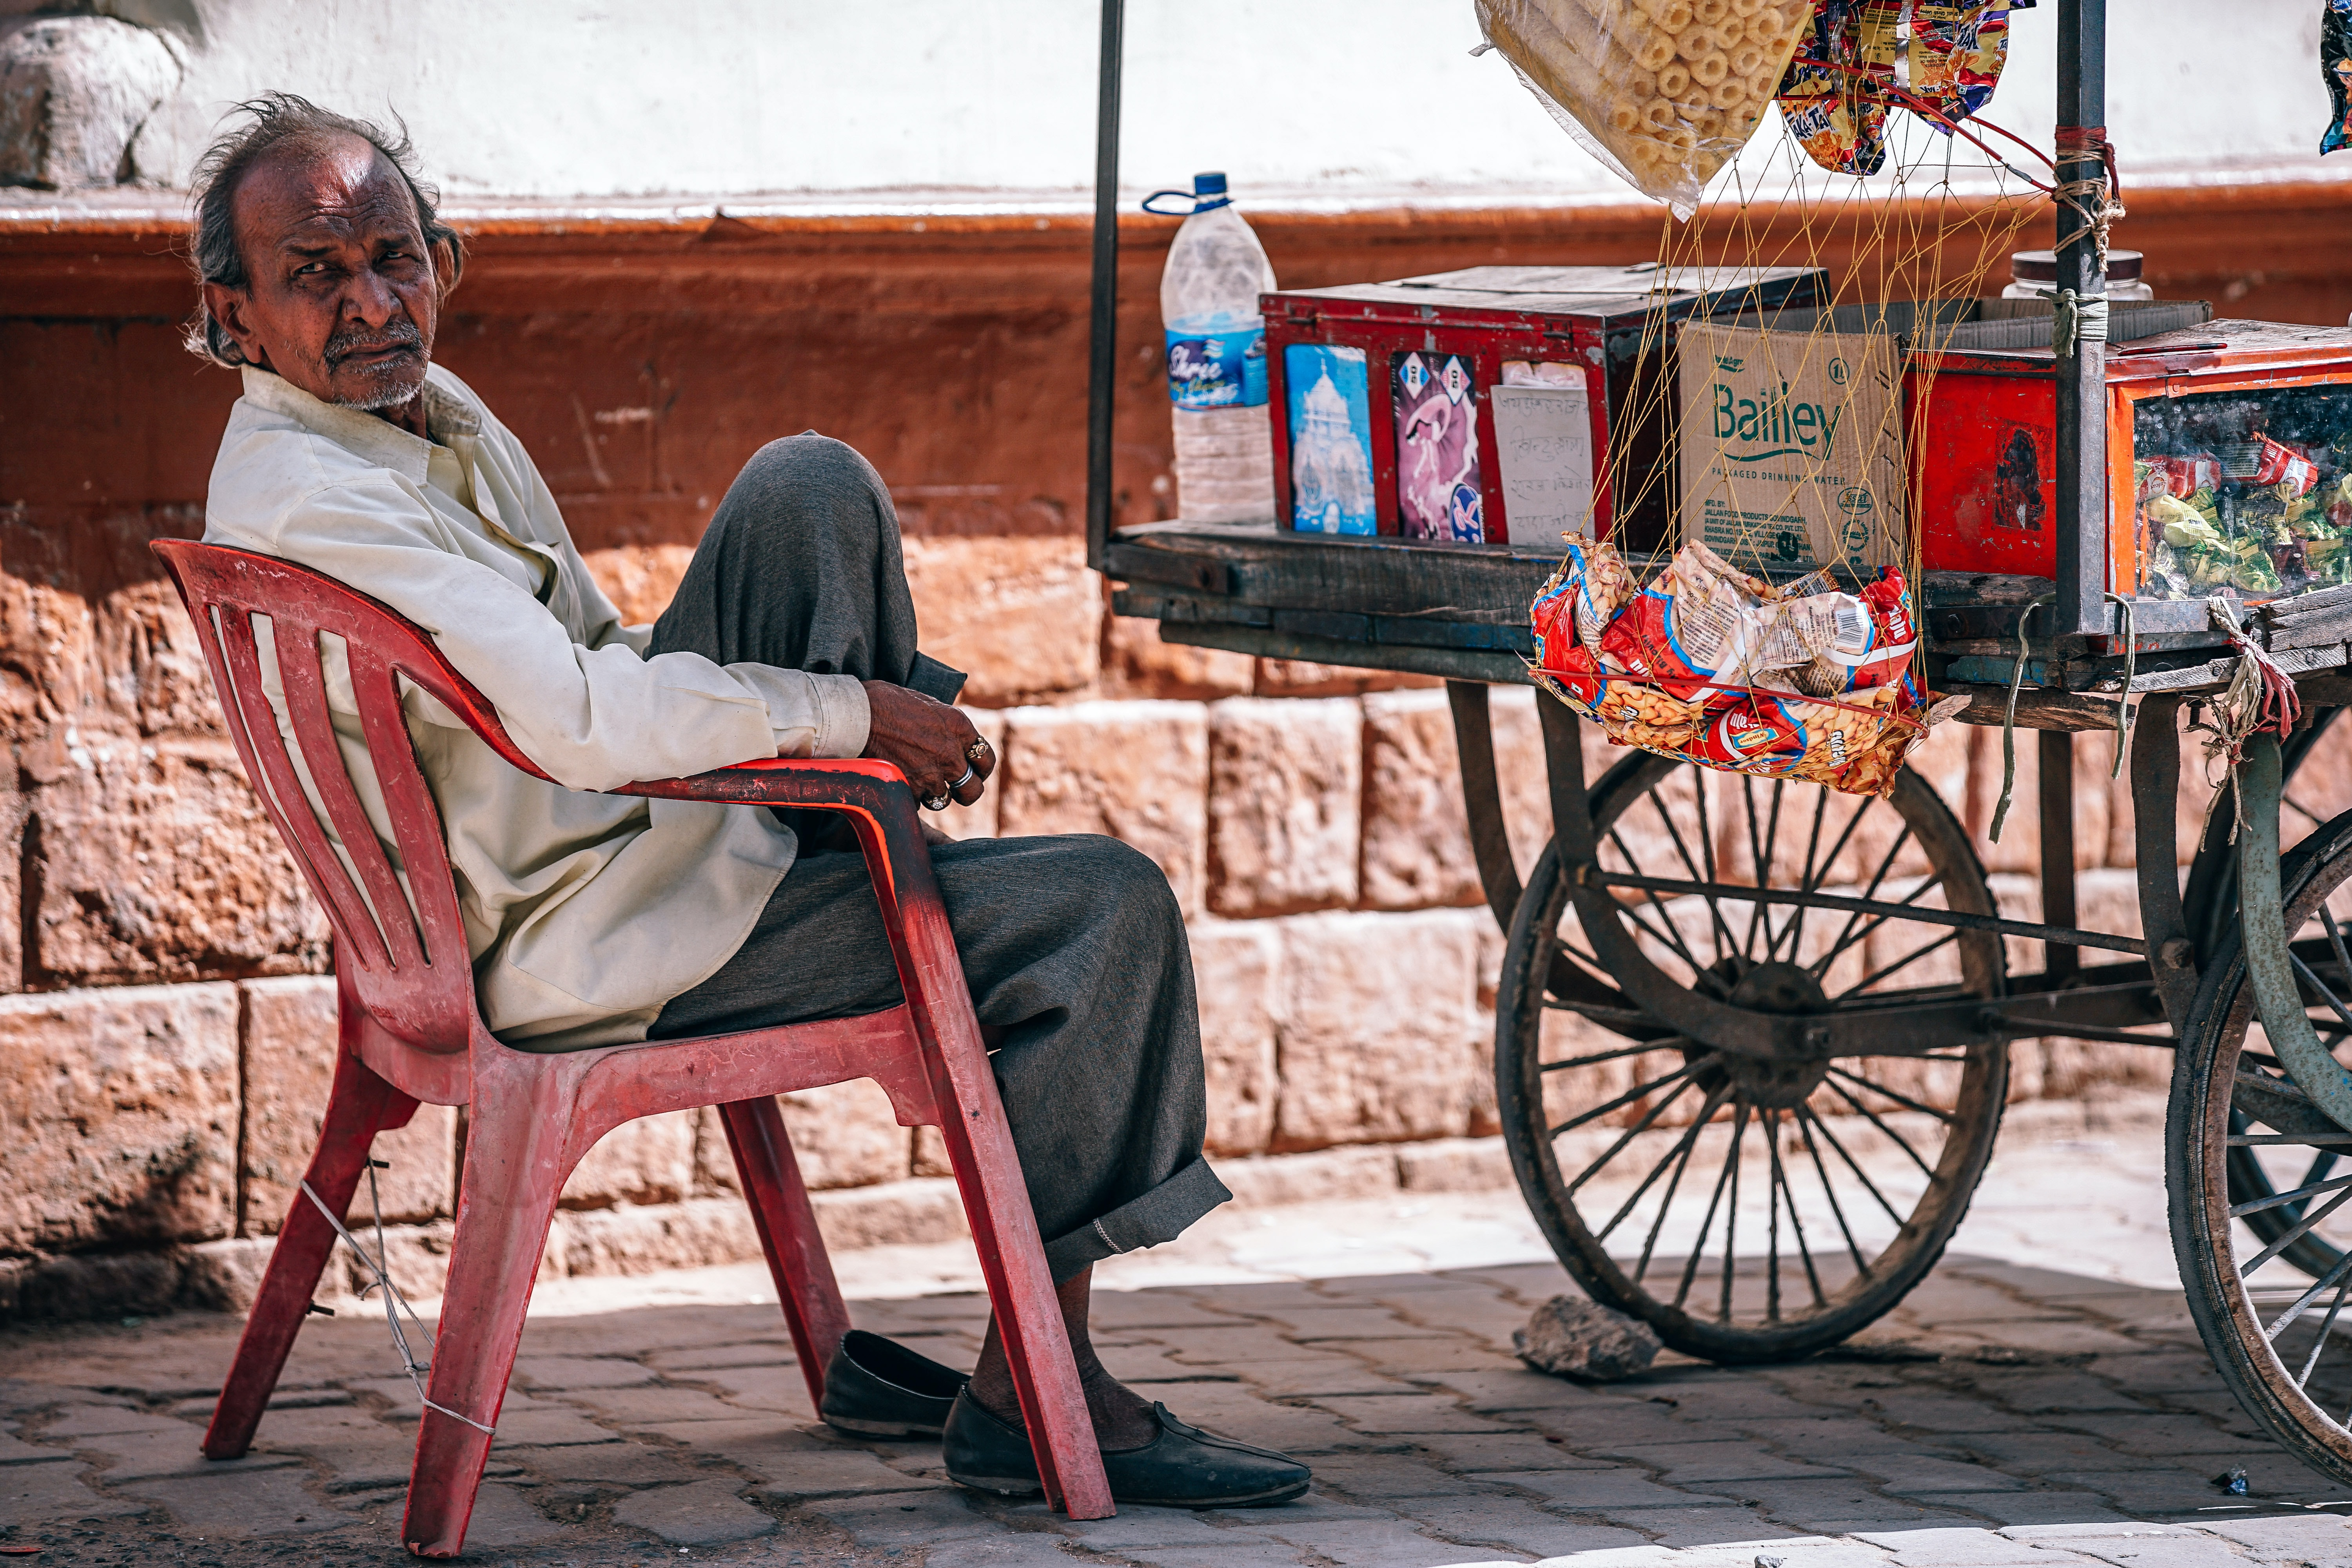 man sitting on chair beside food cart